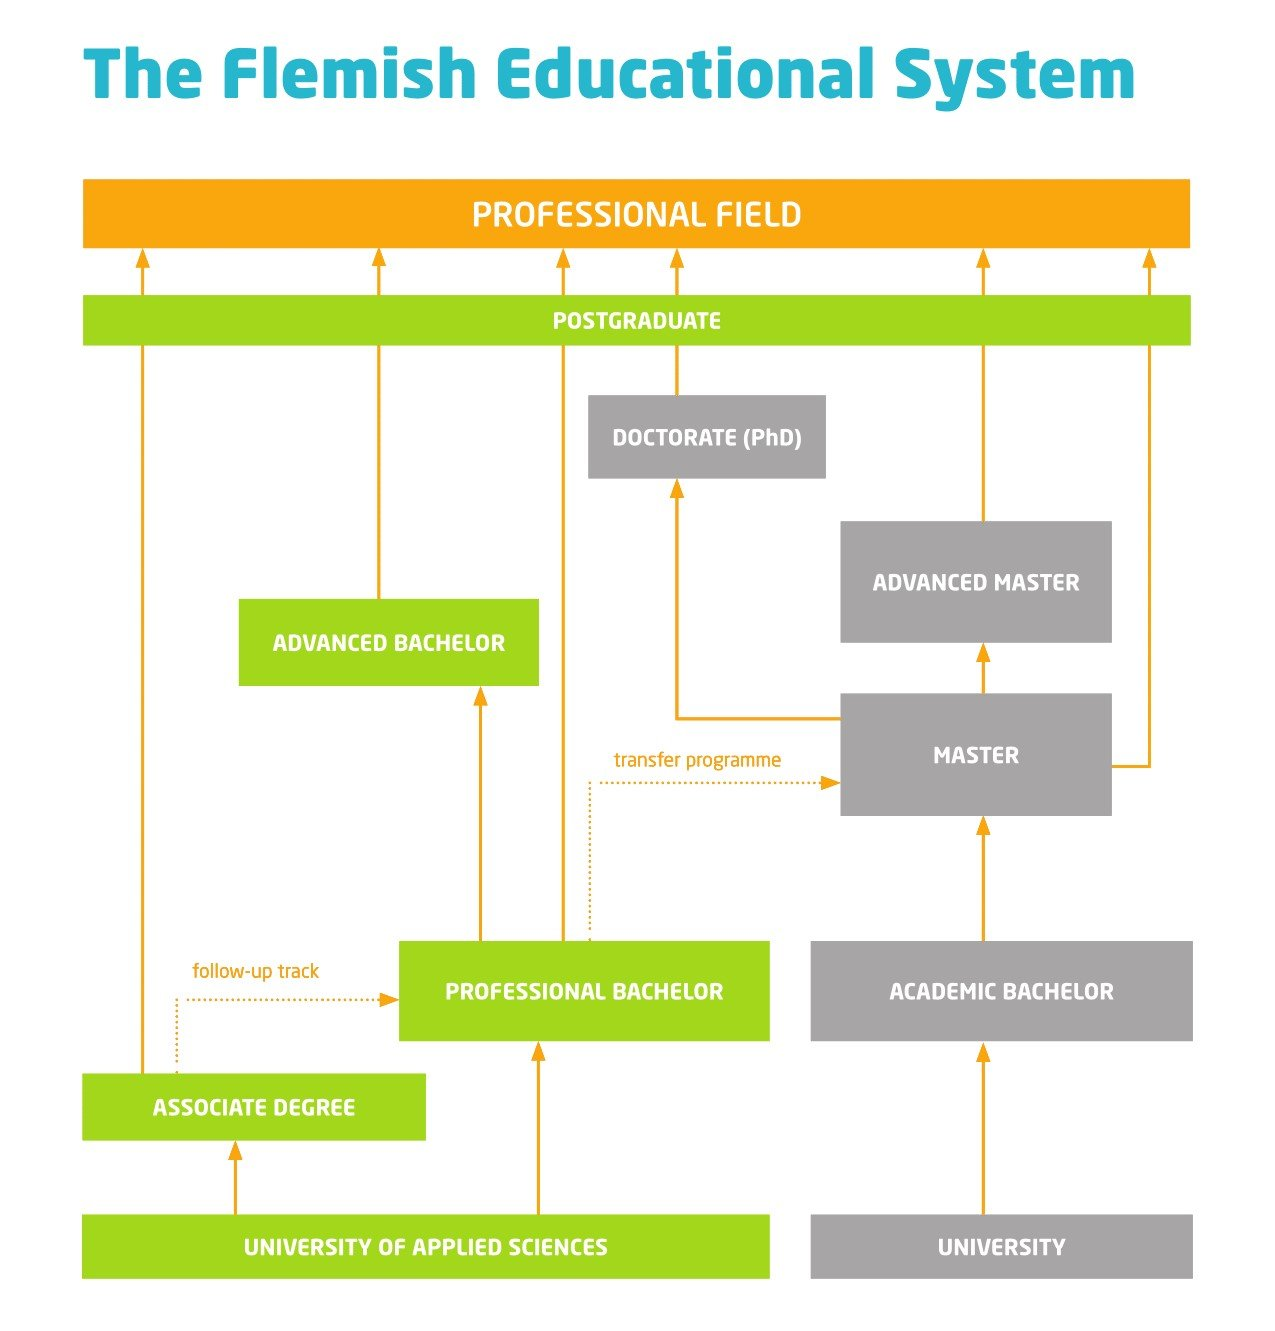 The Flemish Educational System: what's the difference between a univeristy of applied sciences and a university?